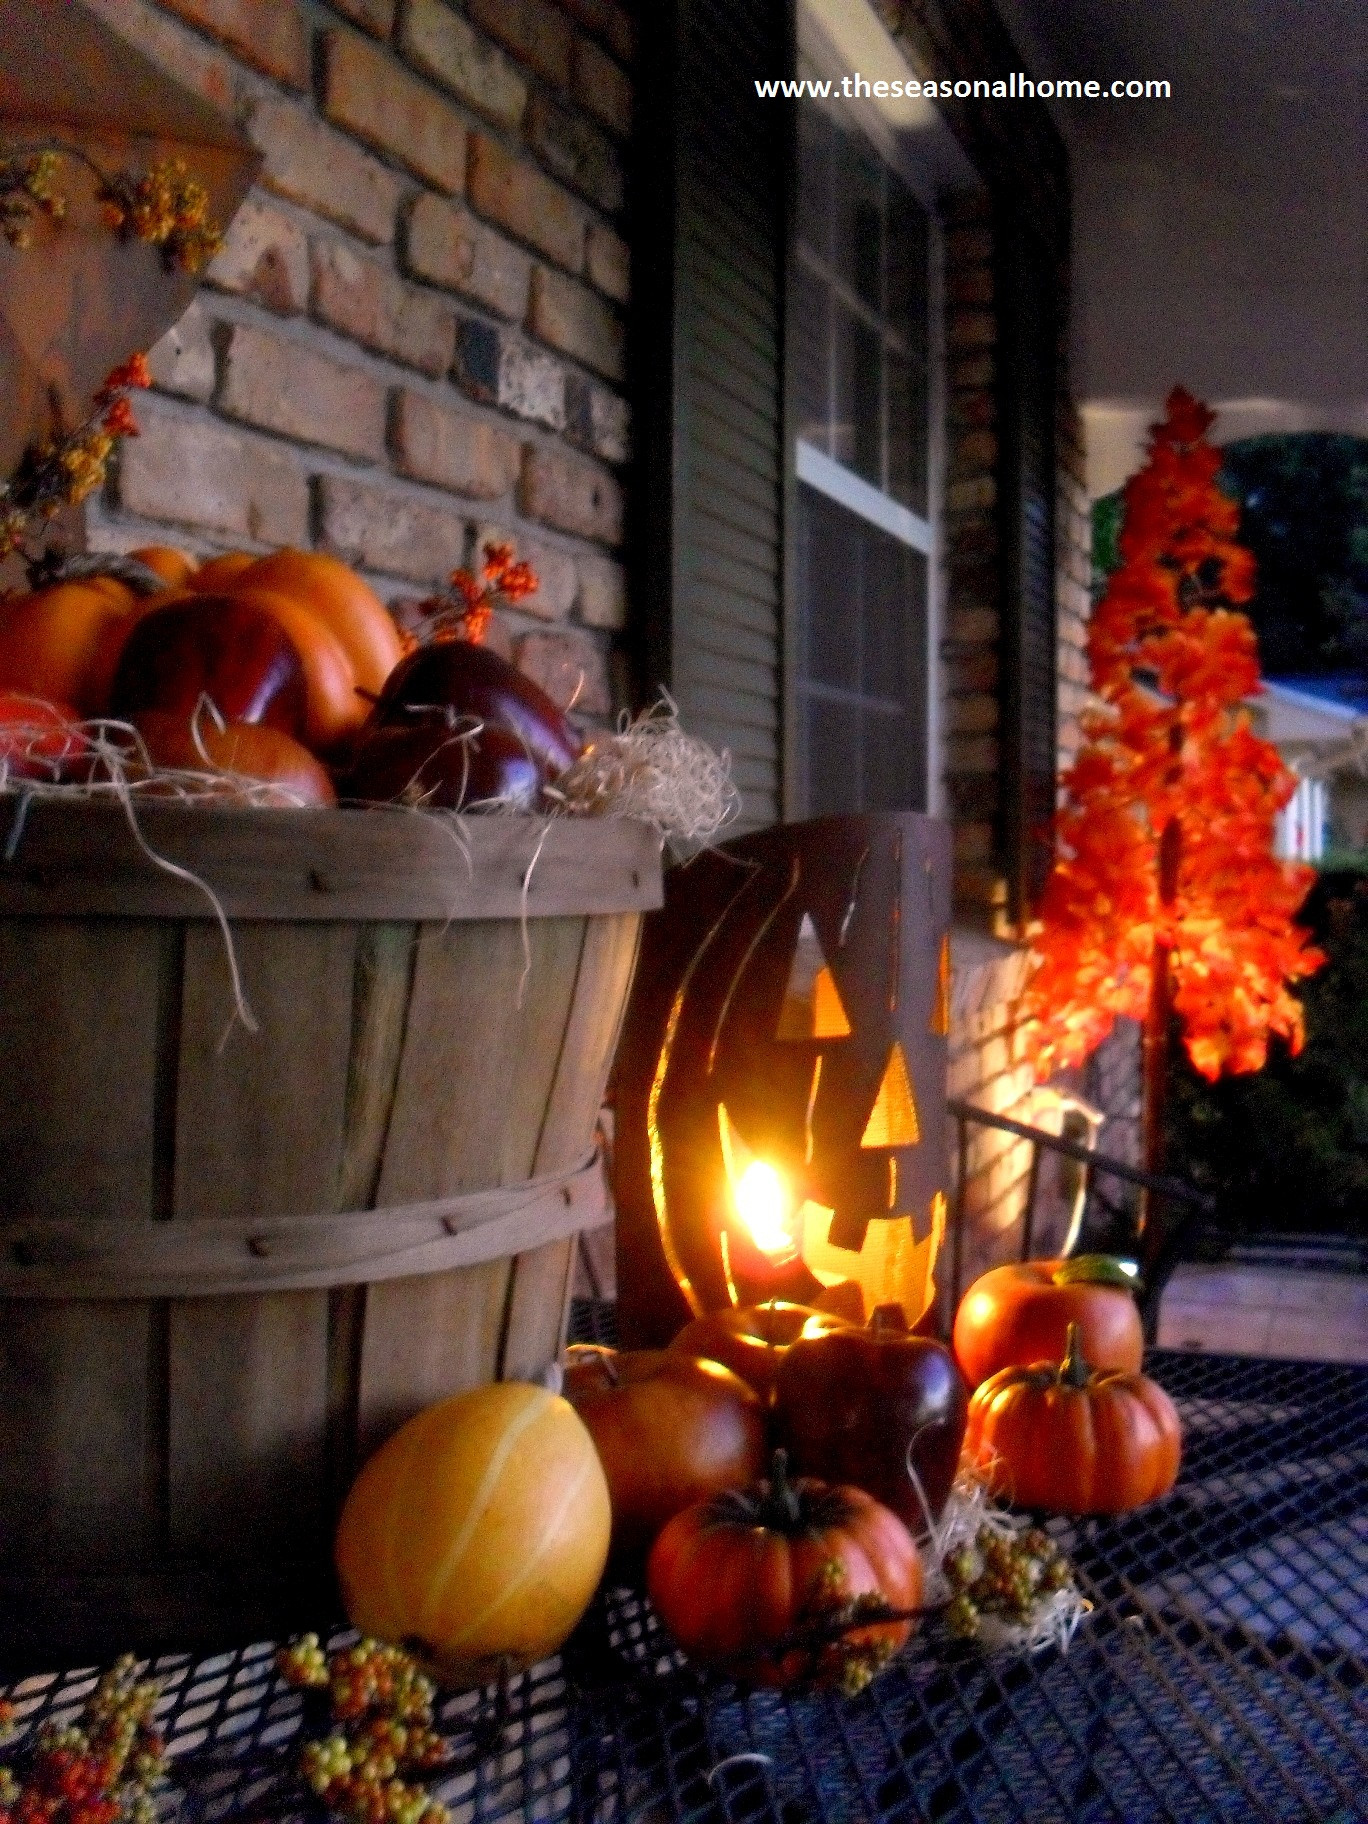 Porch Decorations For Halloween  Fall has Fell on the front porch The Seasonal Home